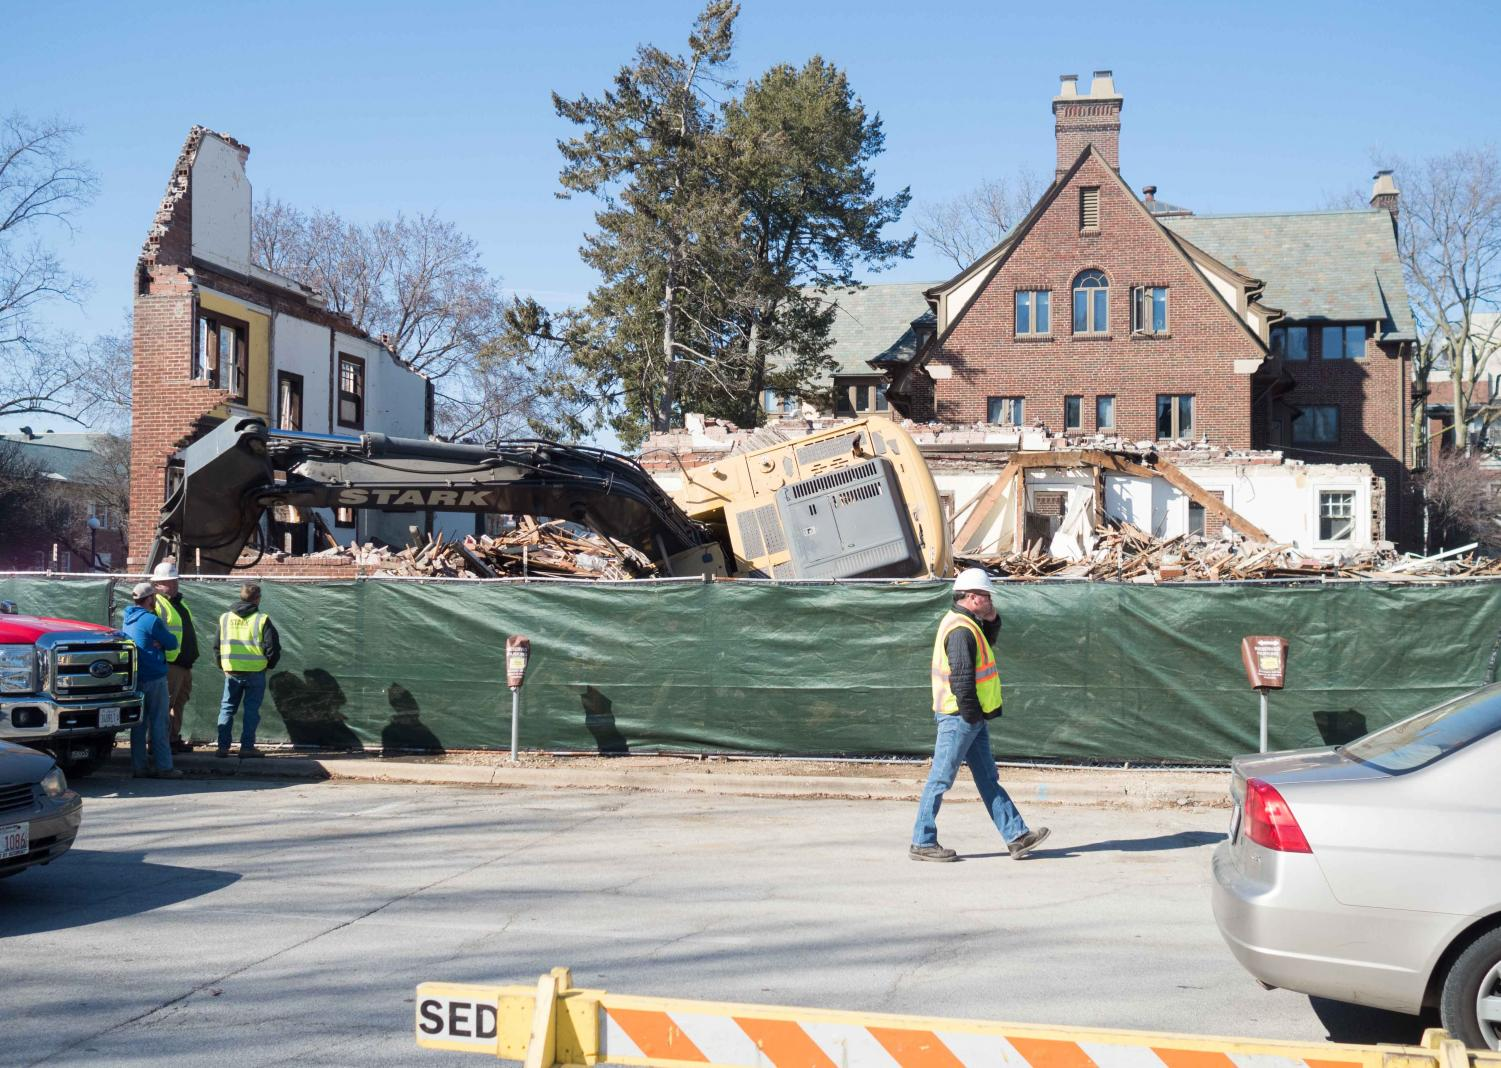 The former house for Bruce D. Nesbitt African American Cultural Center has been torn down and will be replaced with a new building at the same location. which is expected to open in 2018.